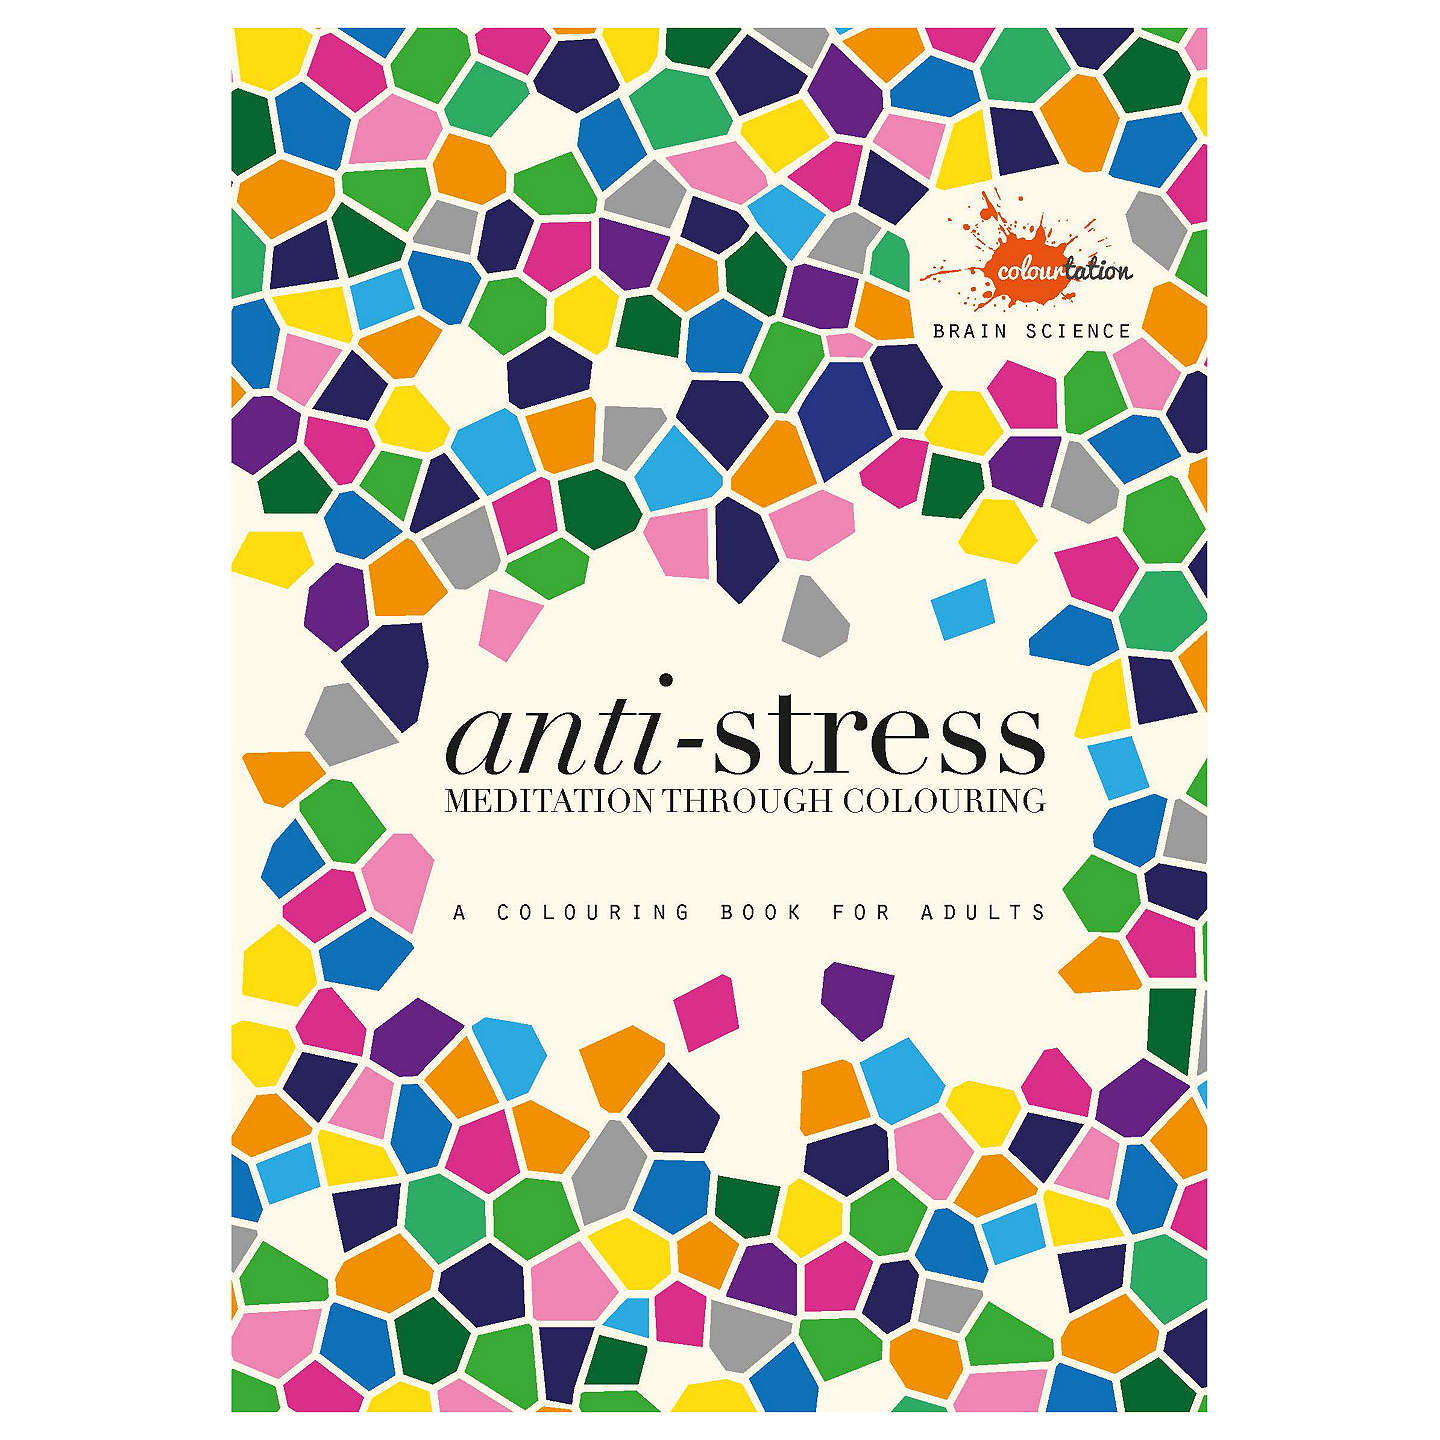 BuyBrain Science Anti Stress Colouring Book For Adults Online At Johnlewis